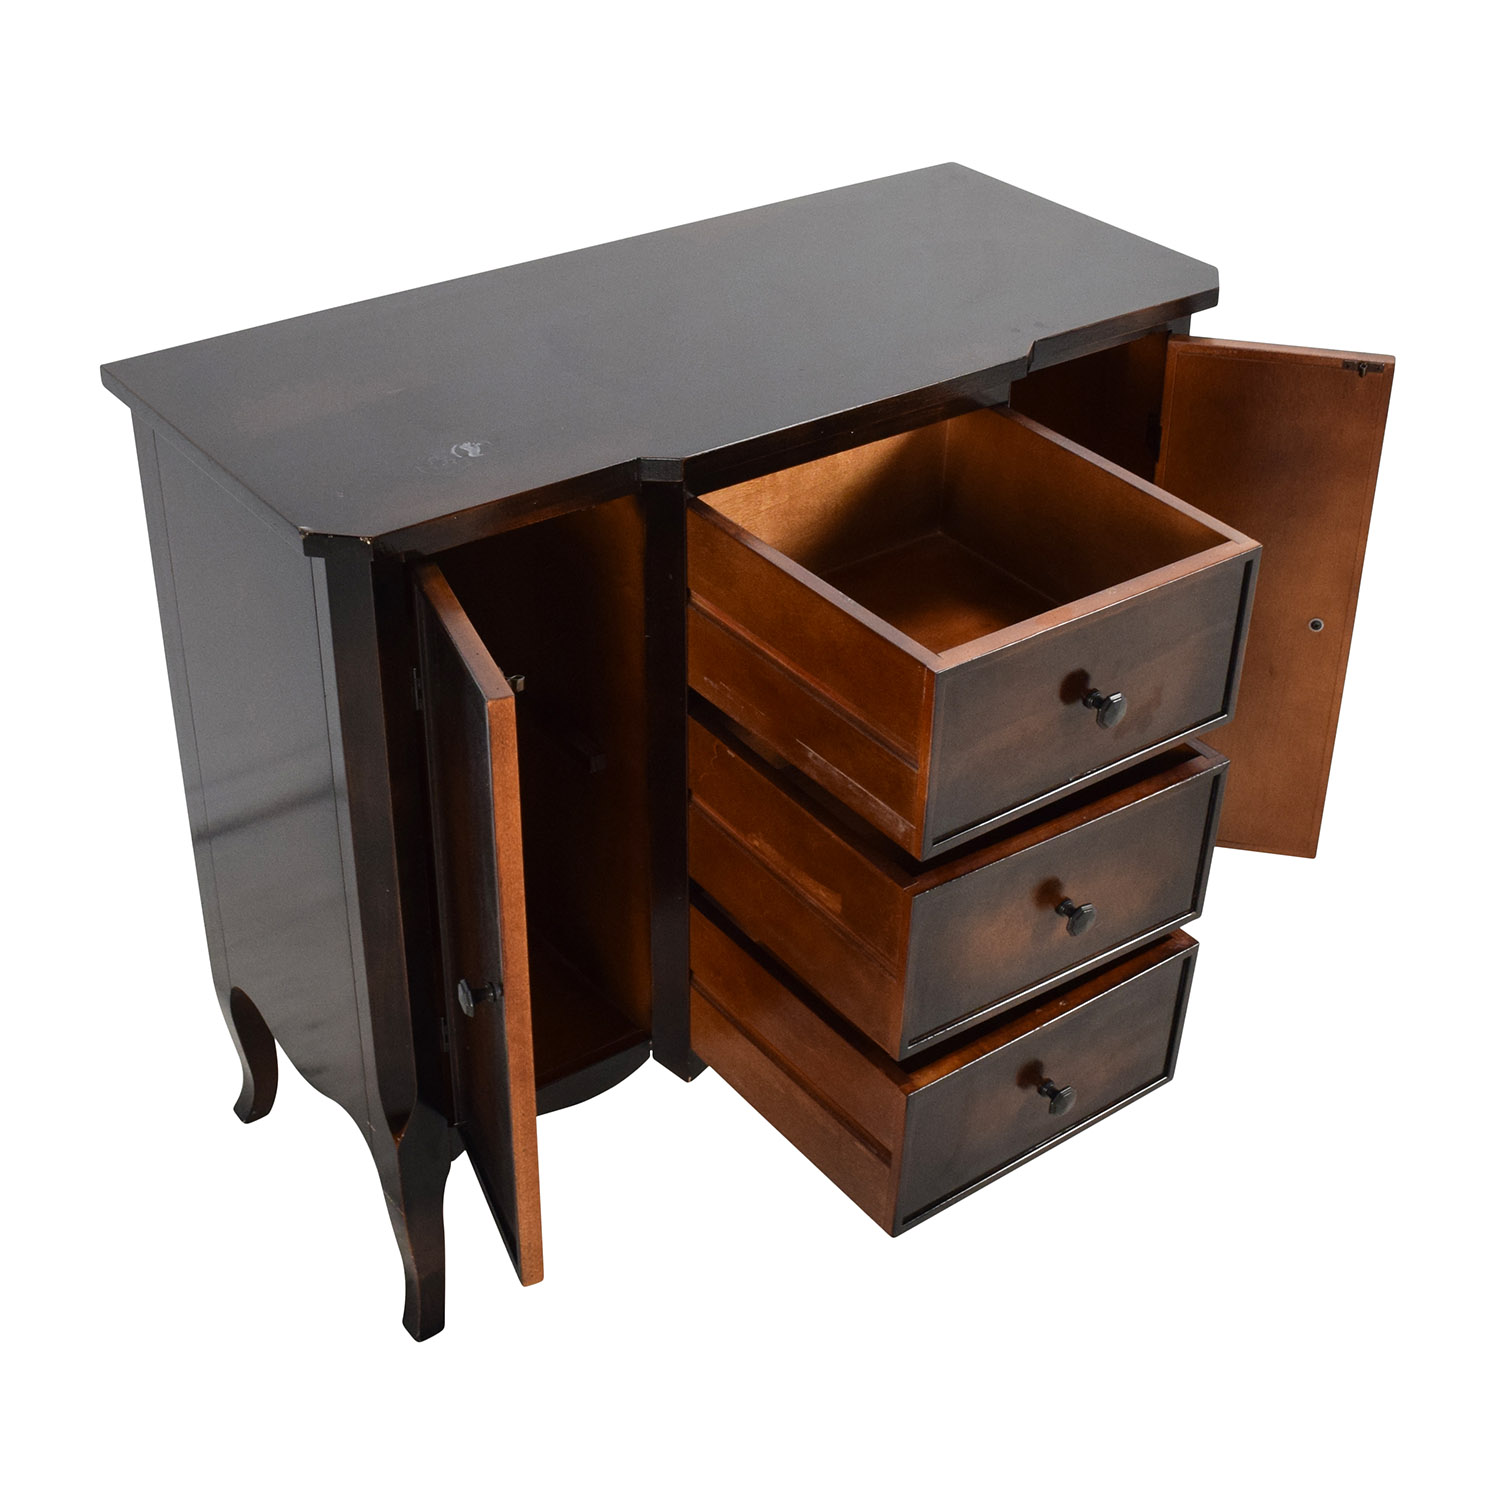 69 off buying and design spa italia b d italia wooden for 2nd hand salon furniture sale